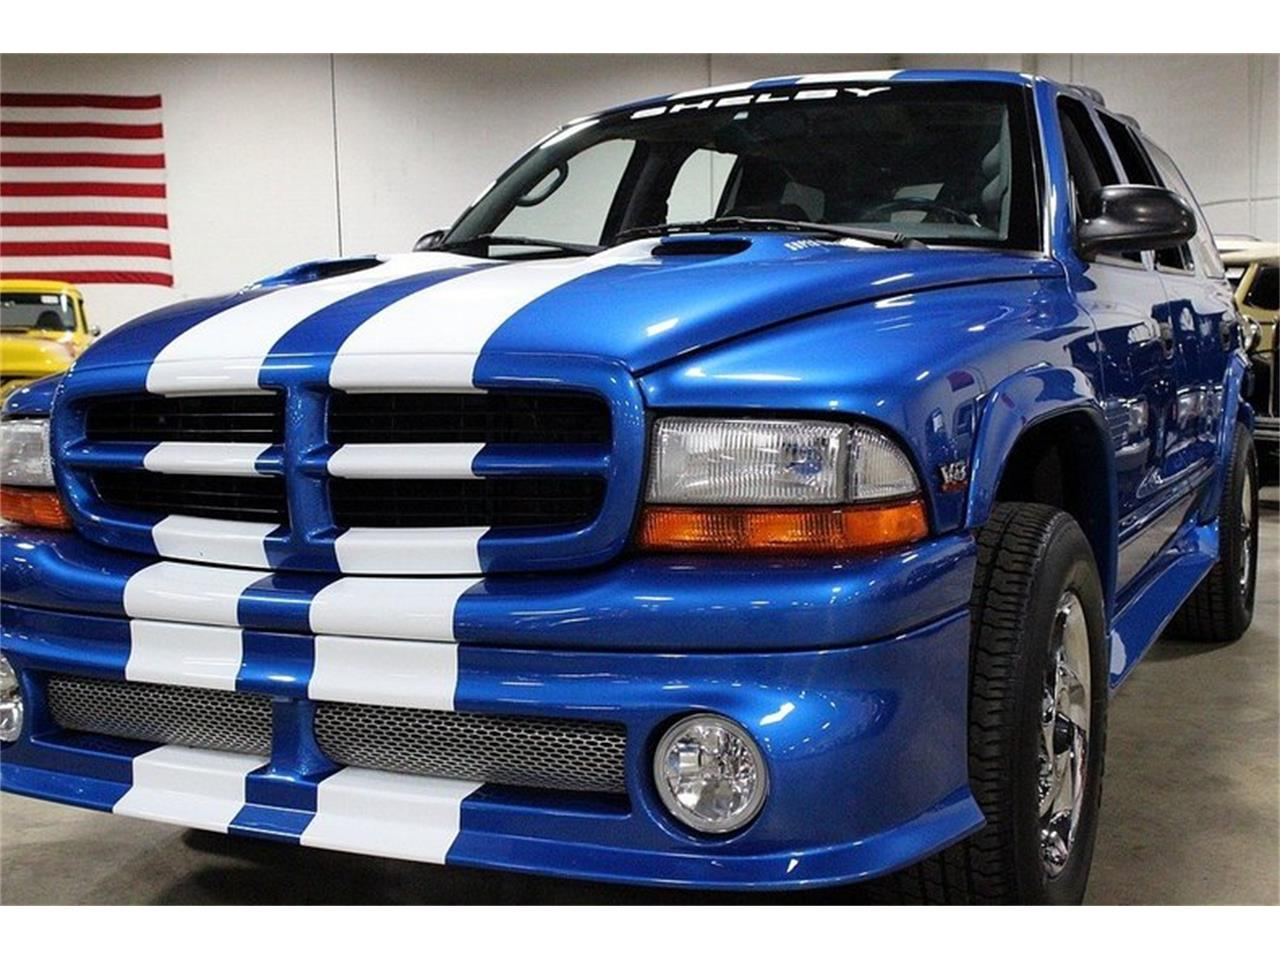 Large Picture of 1999 Durango Shelby SP-360 located in Kentwood Michigan - MB1Y